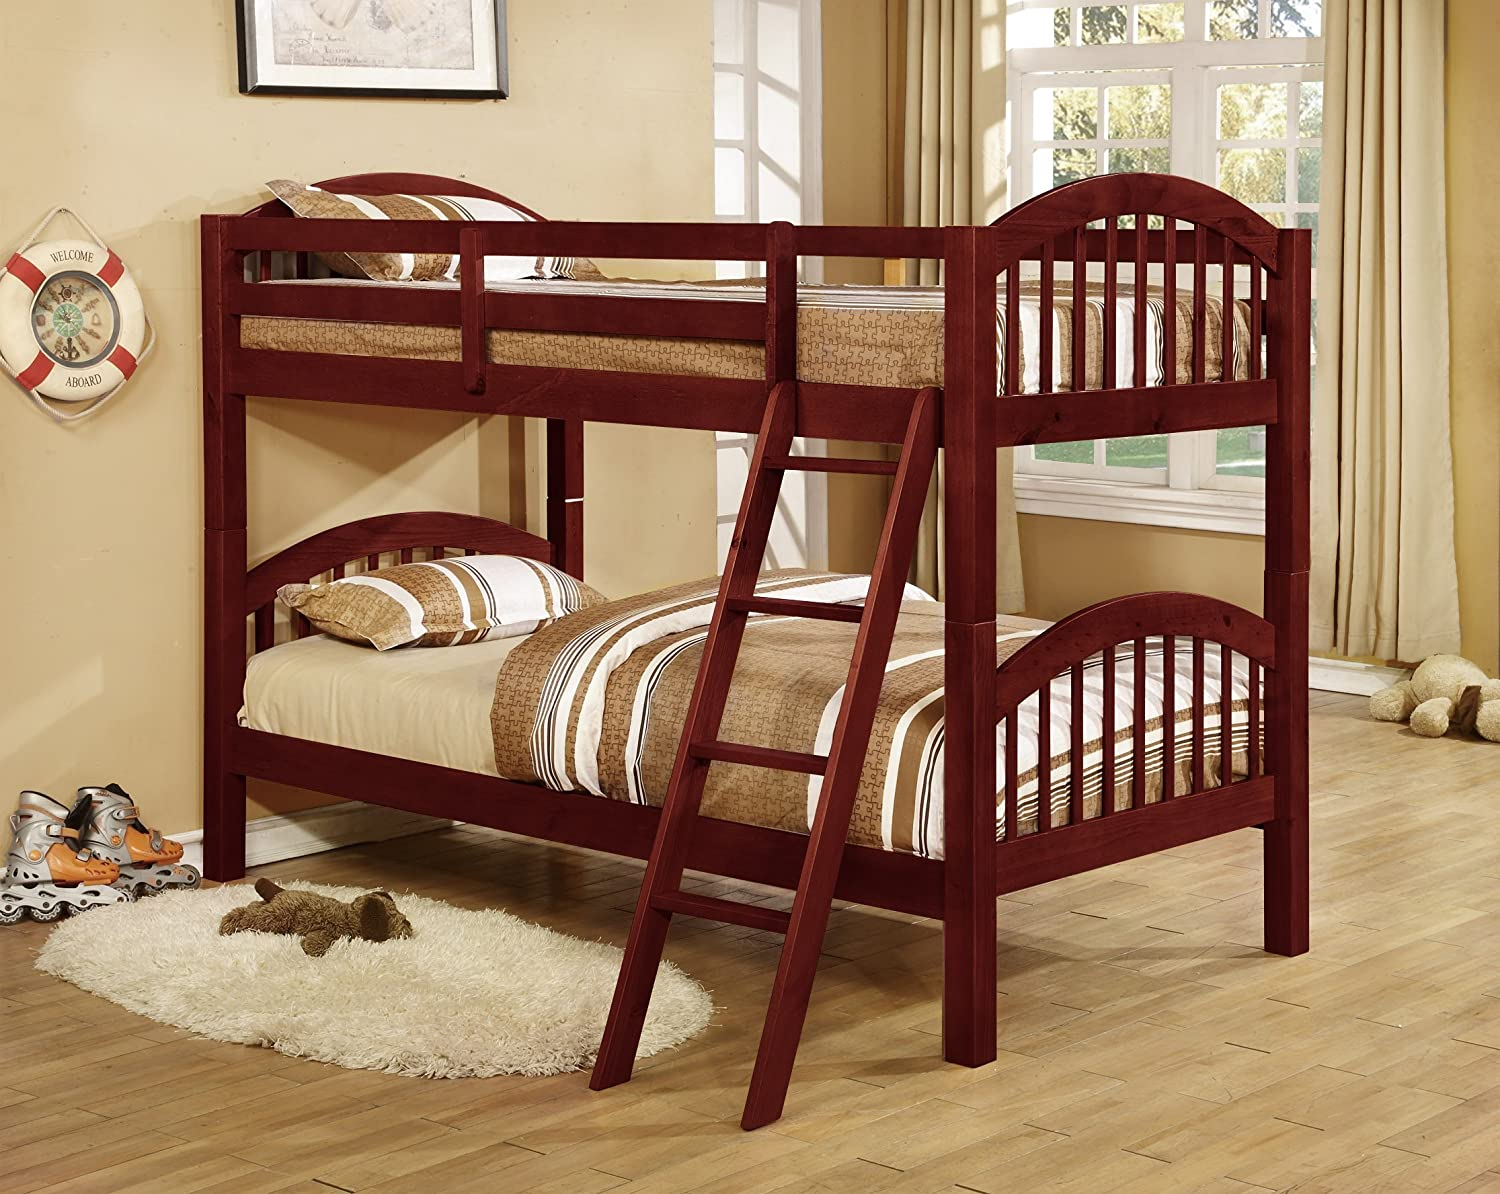 King S Brand B125c Wood Arched Design Convertible Bunk Bed Twin Cherry Finish Amazon Co Uk Kitchen Home